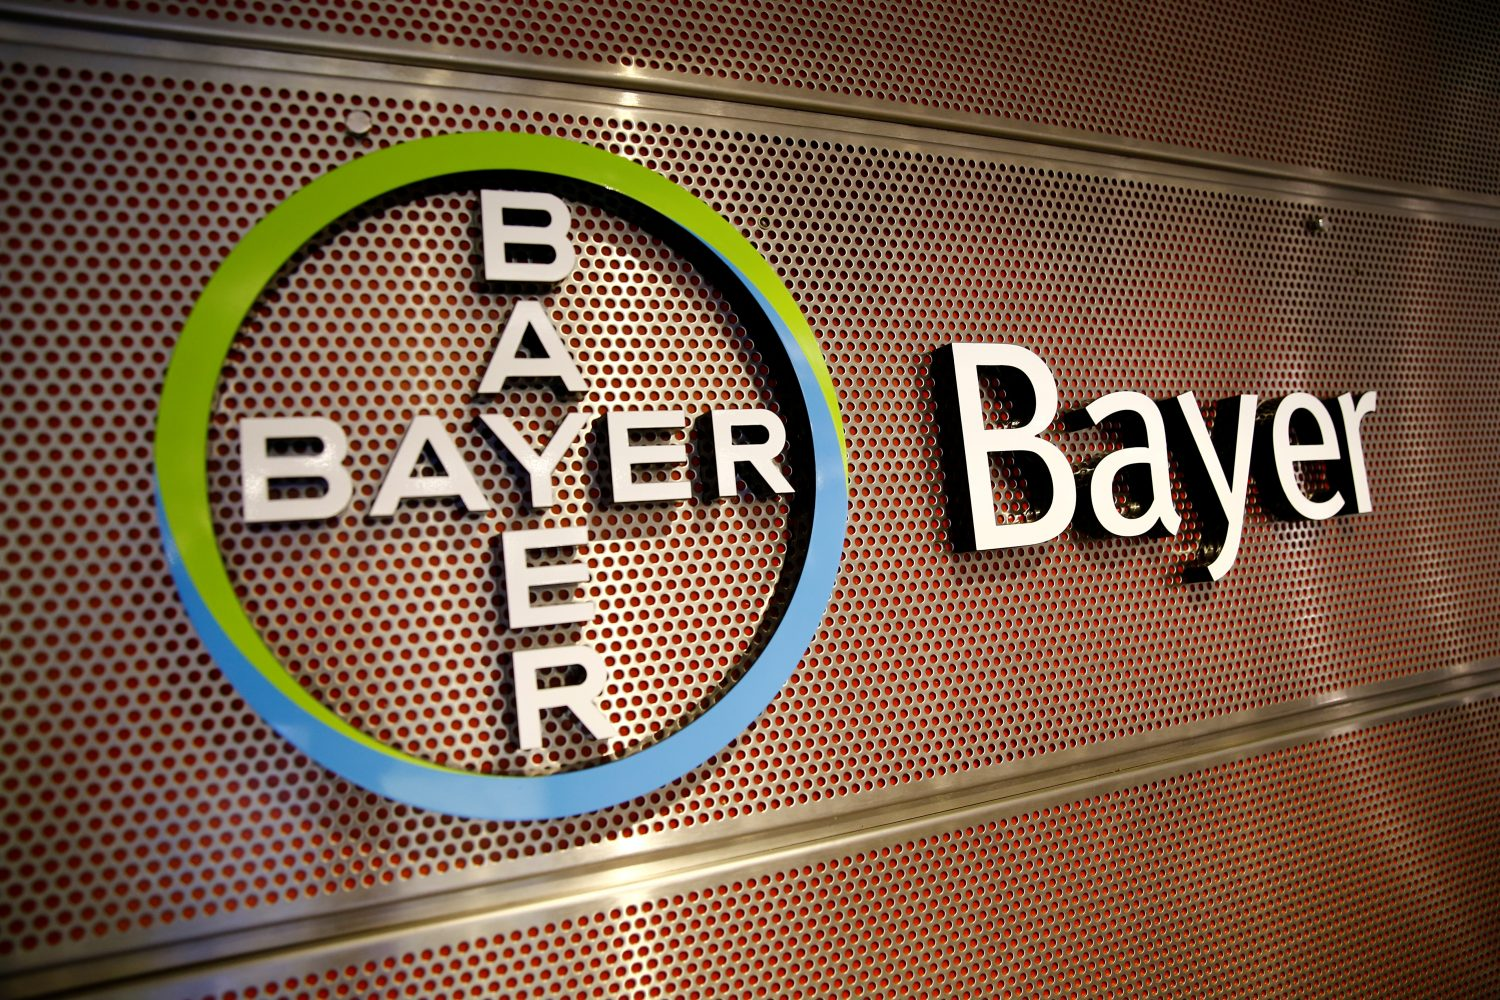 FILE PHOTO: Logo of Bayer AG is pictured at the annual results news conference of the German drugmaker in Leverkusen, Germany February 27, 2019. REUTERS/Wolfgang Rattay/File Photo